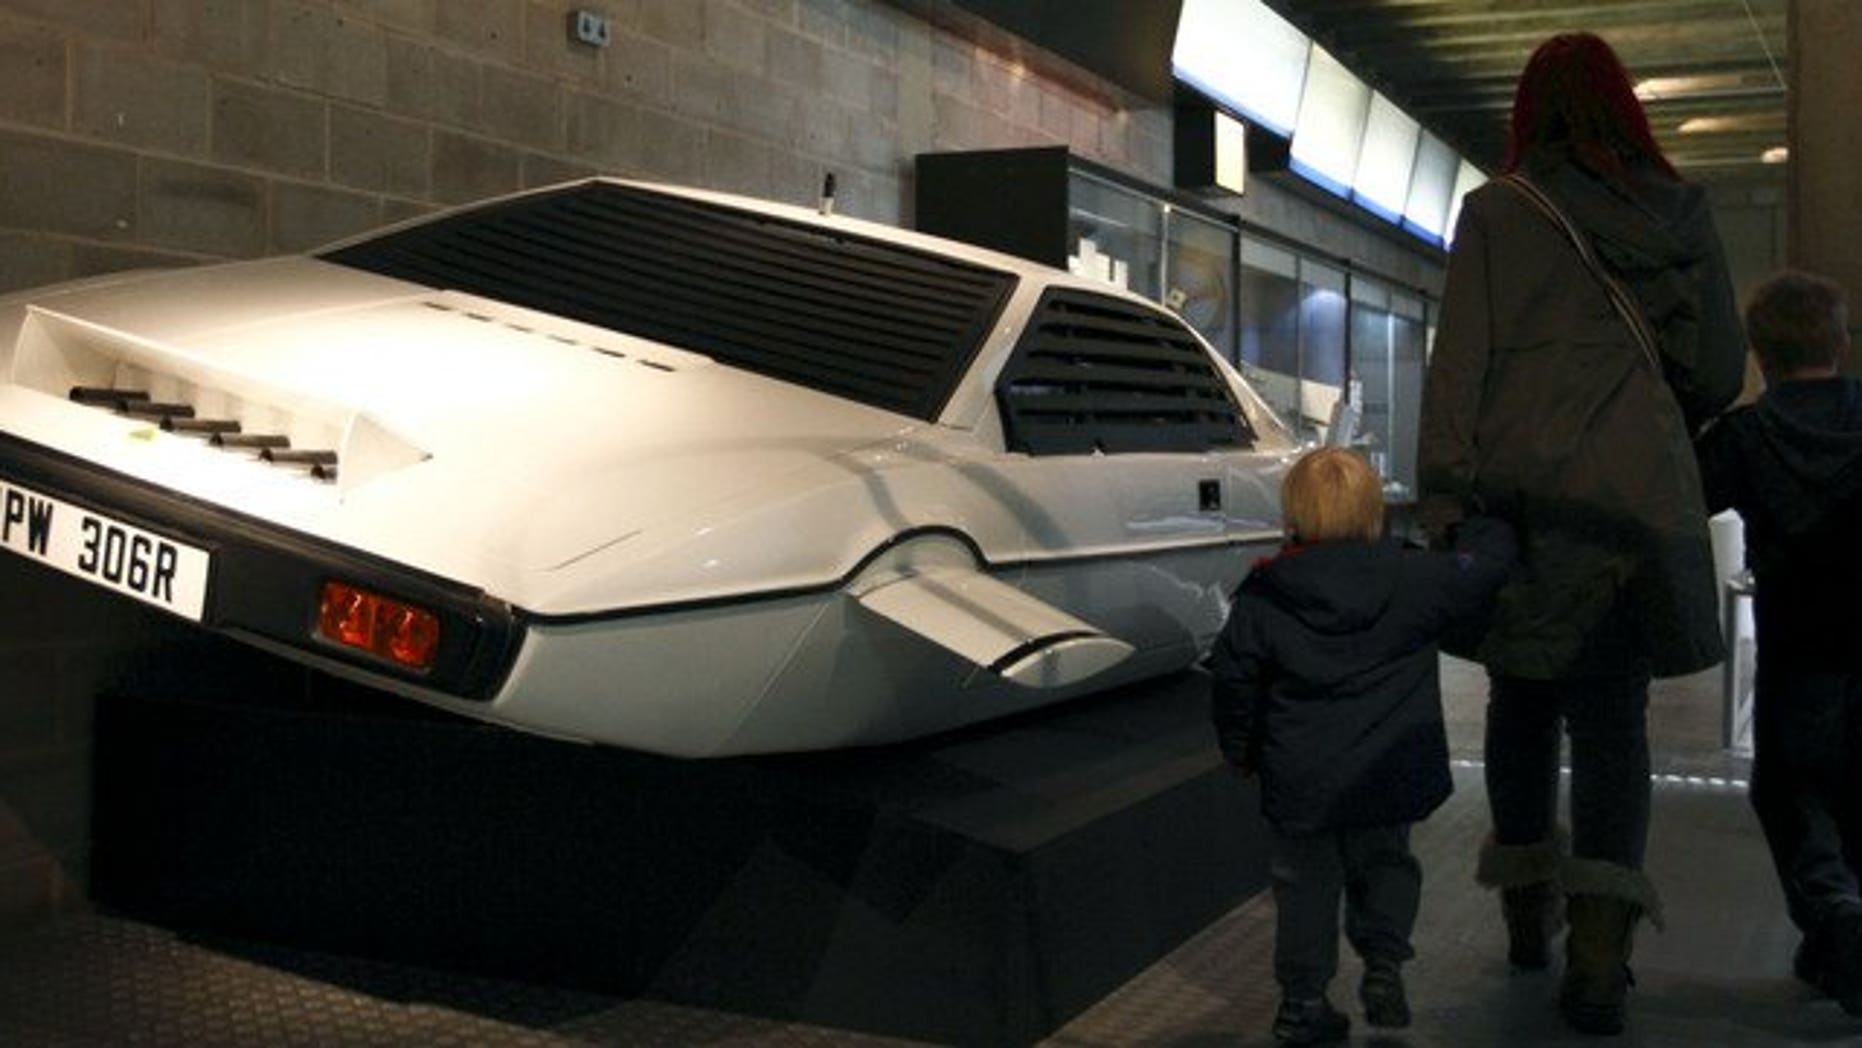 """A family walks past the Lotus Esprit underwater car from the James Bond film """"The Spy Who Loved Me"""" at the Beaulieu National Motor Museum on January 15, 2012."""